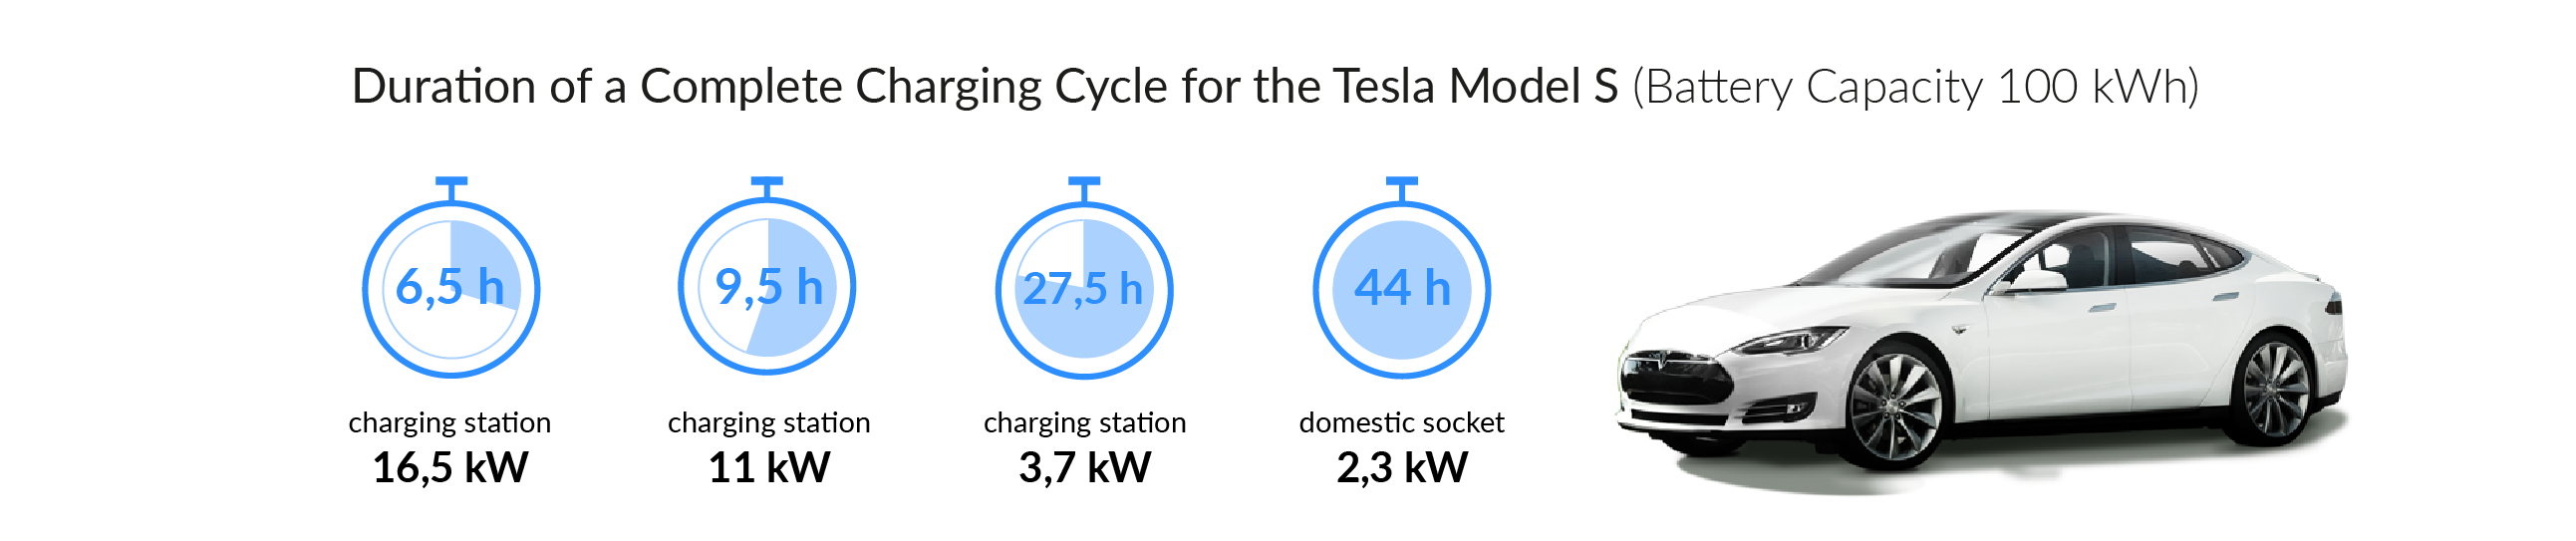 Charging time for your Tesla Model S